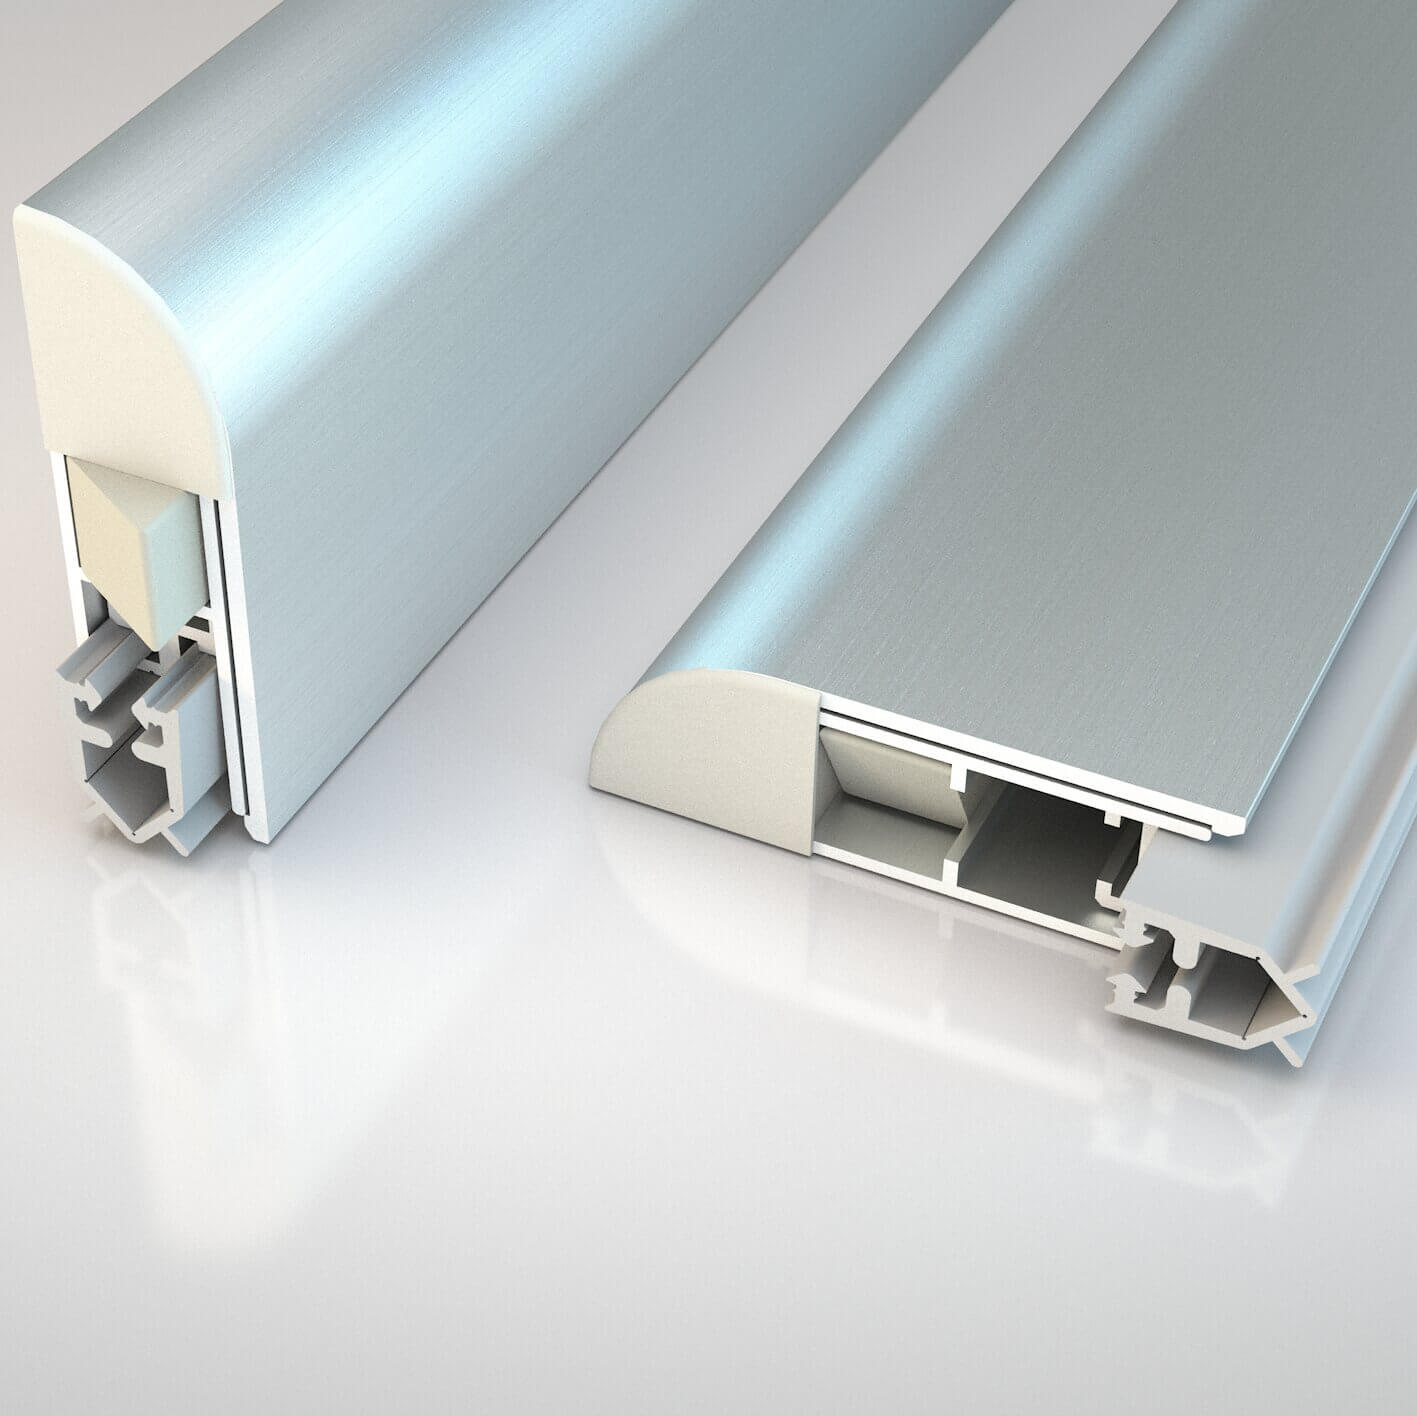 NOR820 Acoustic And Fire Door Seal